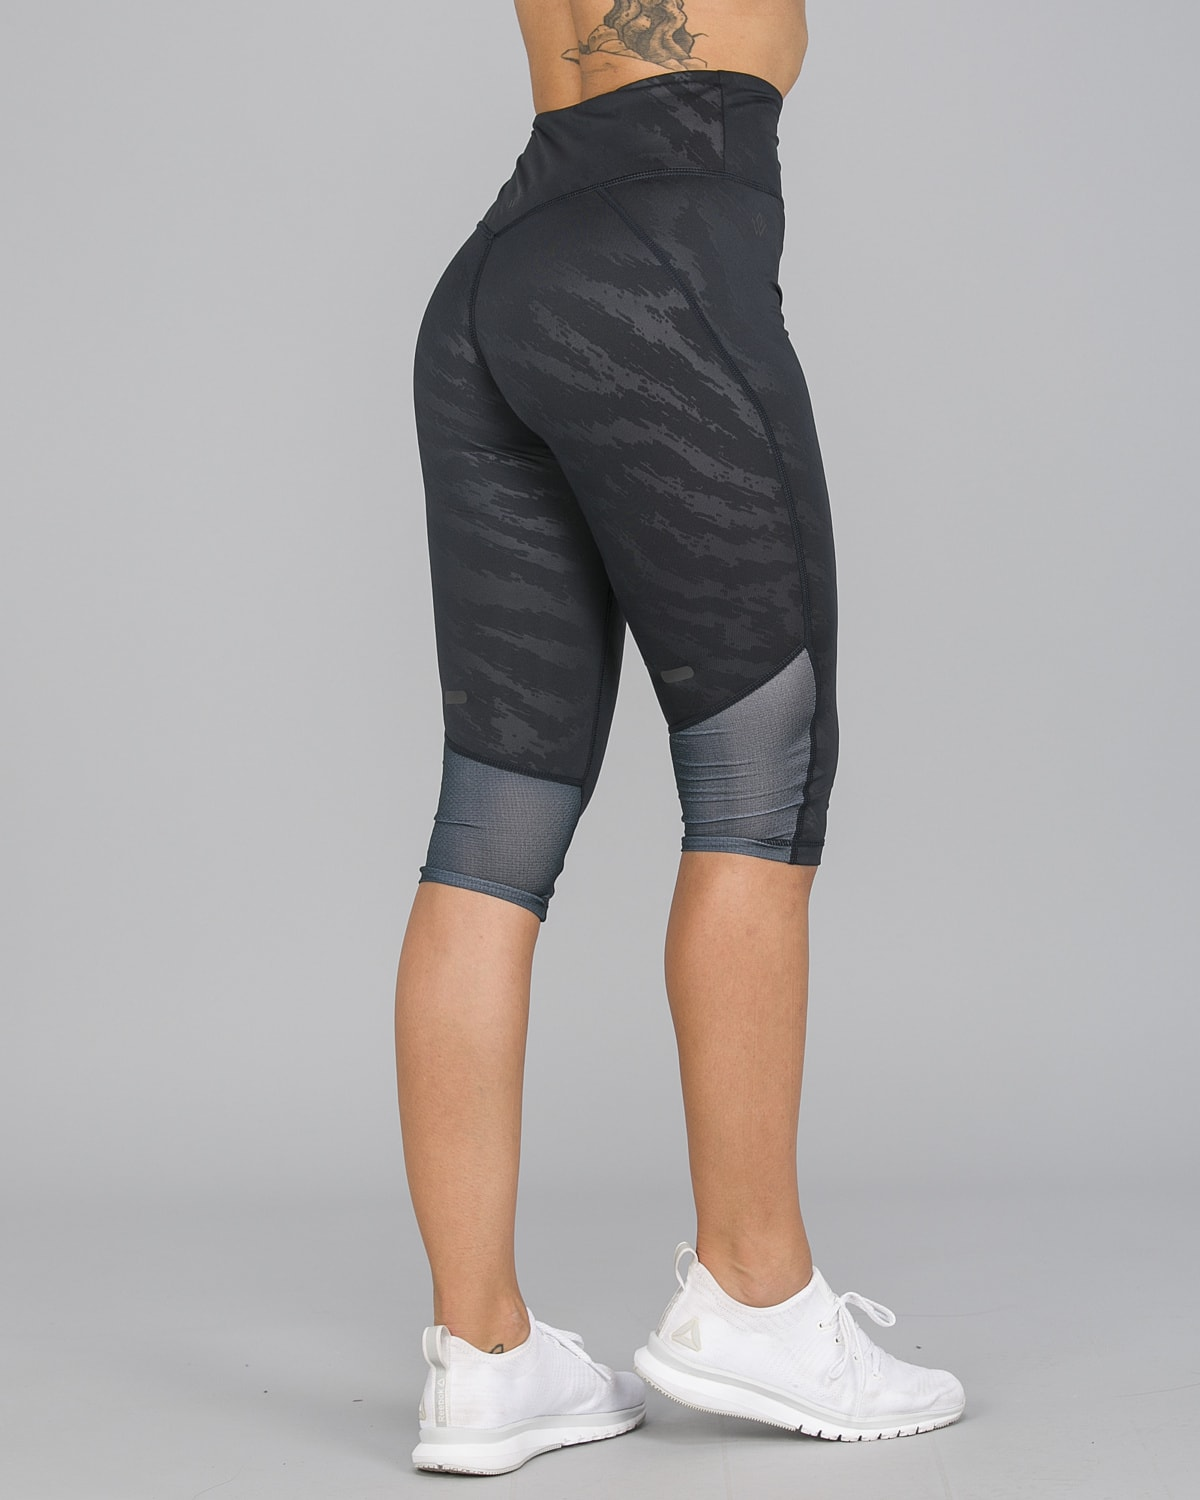 Workout Empire – Elevate 3:4 Leggings – Svart7